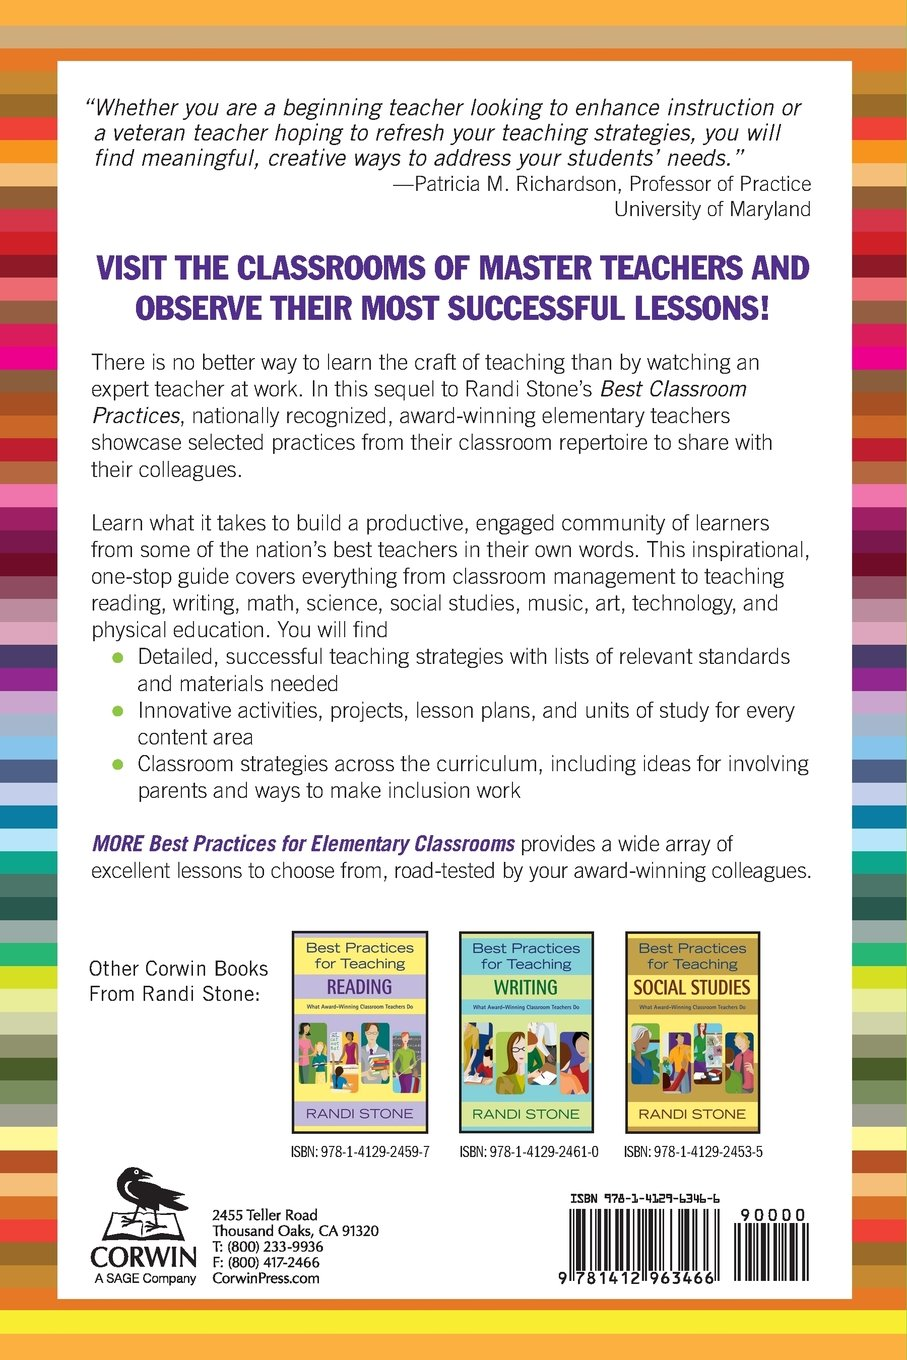 Buy More Best Practices For Elementary Classrooms What Award